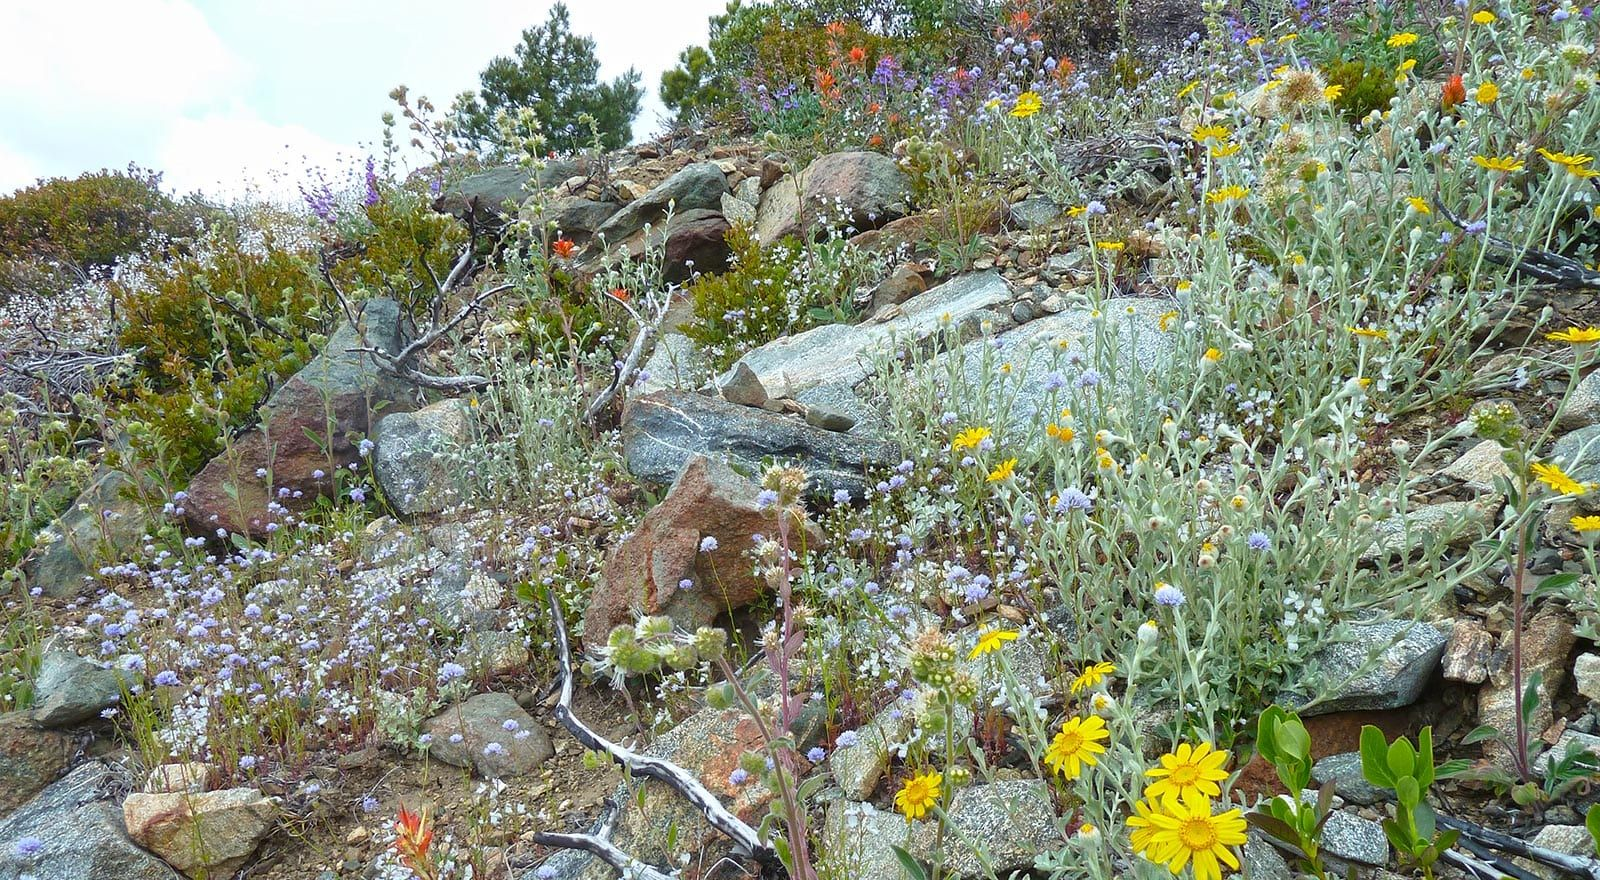 wildflowers after wildfire are a boon for pollinators